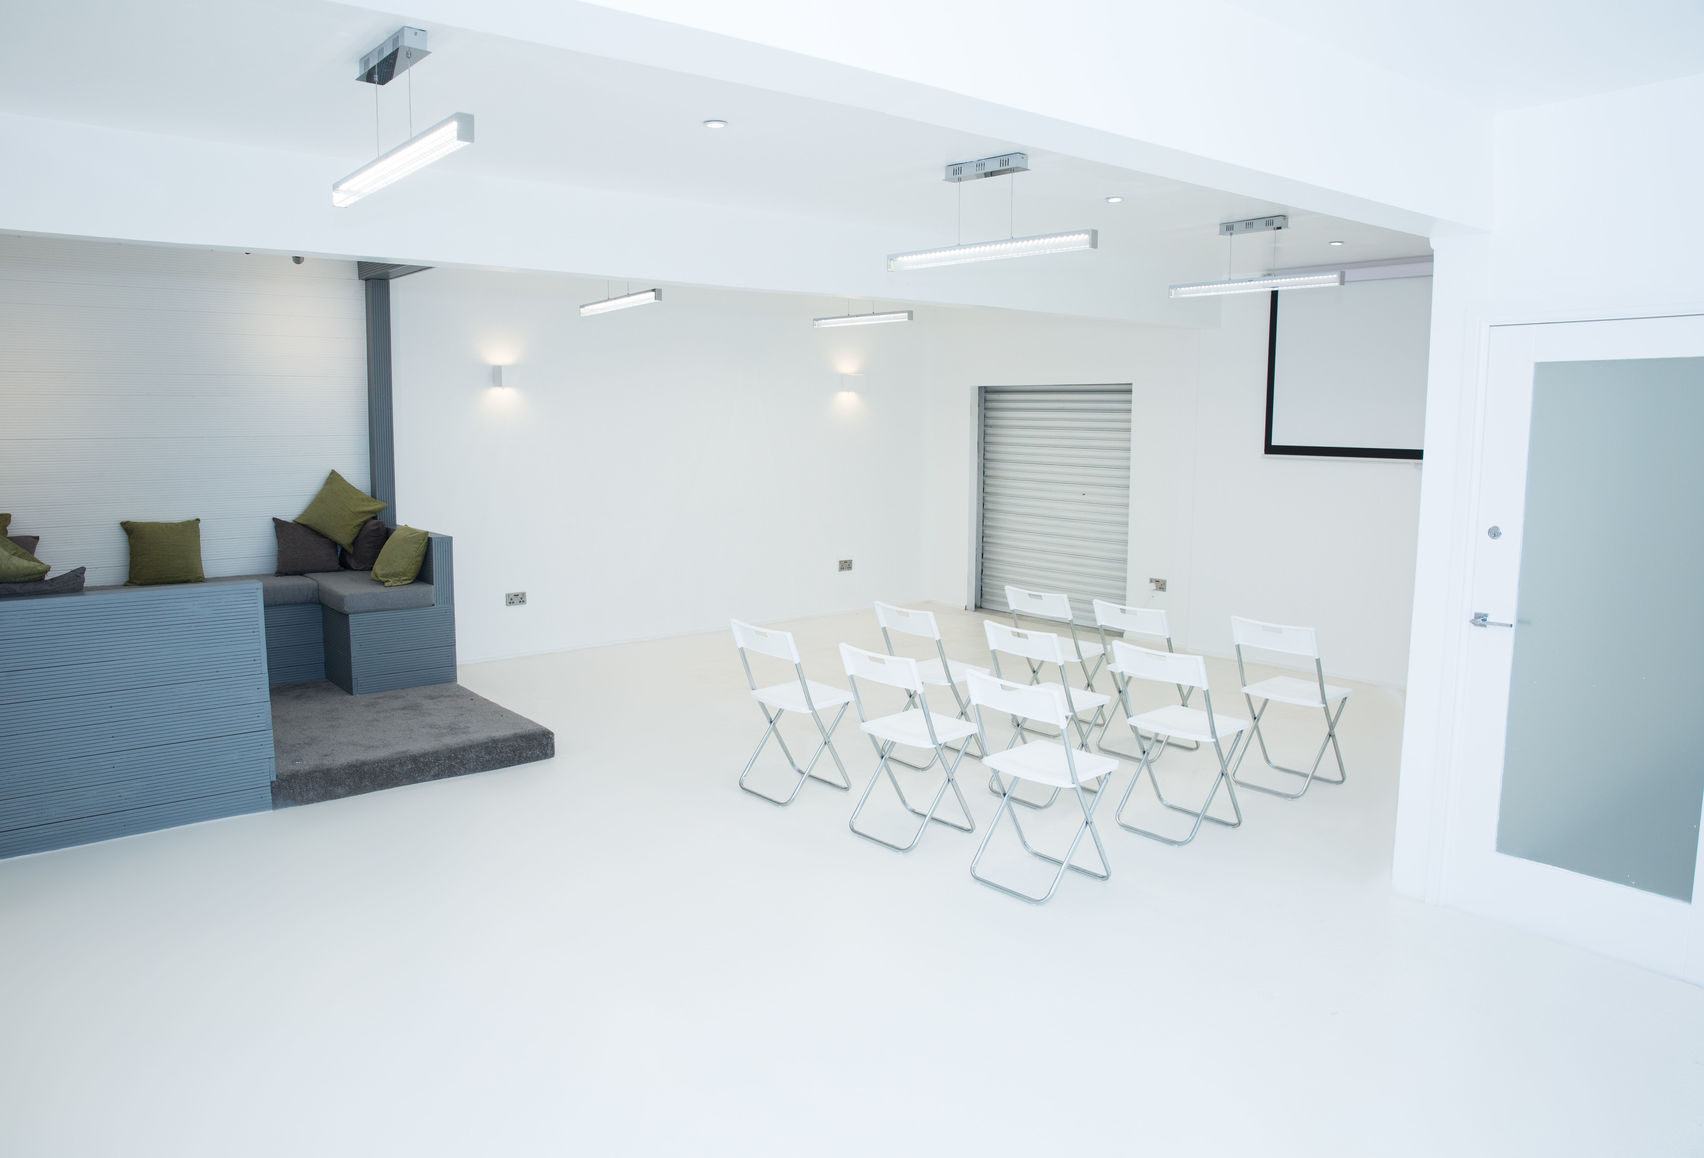 Events & Media Facility, Square Suite E18